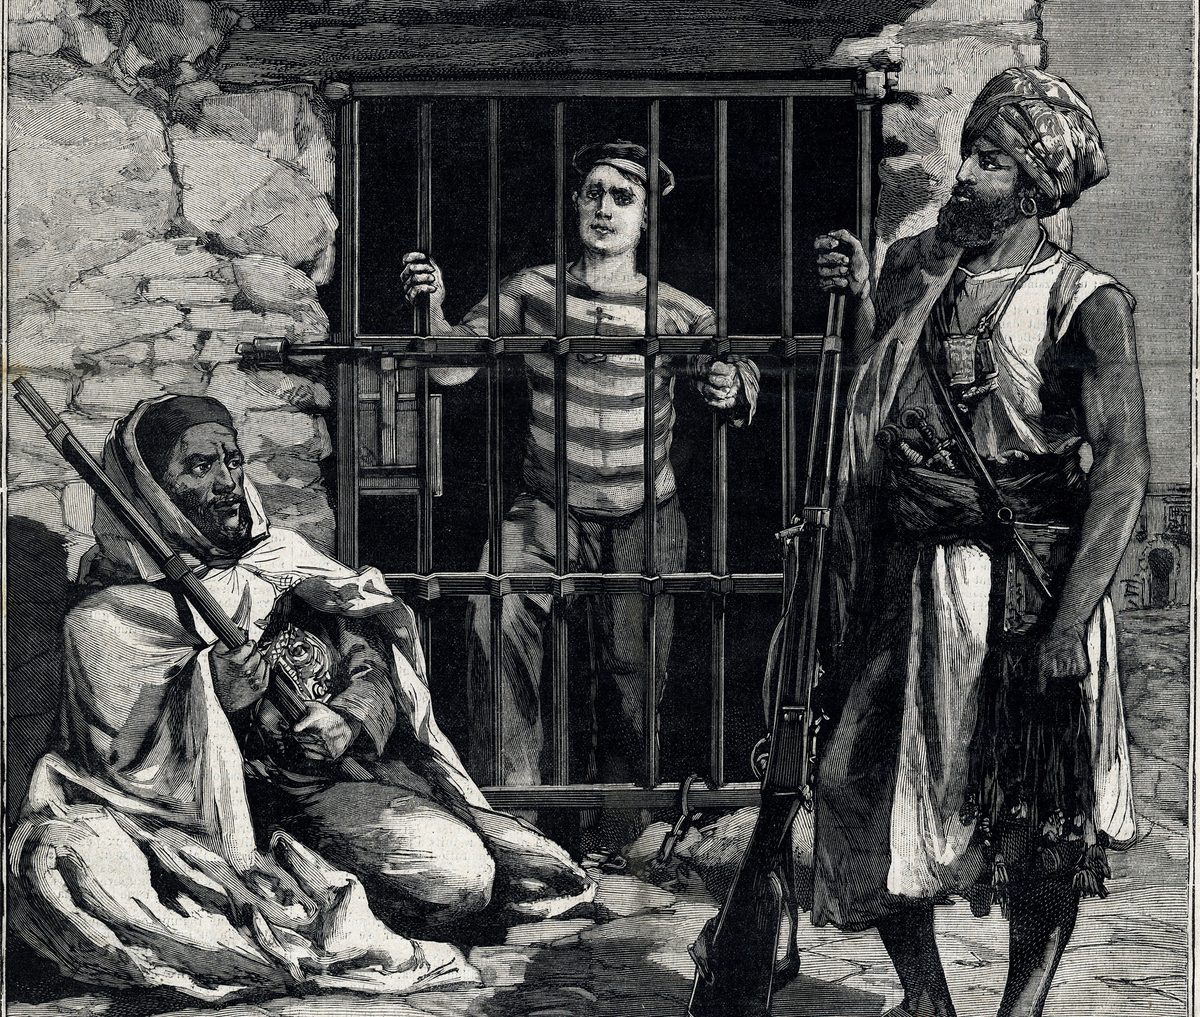 Art depicts sailor Paul Peinen being kept captive by two pirates